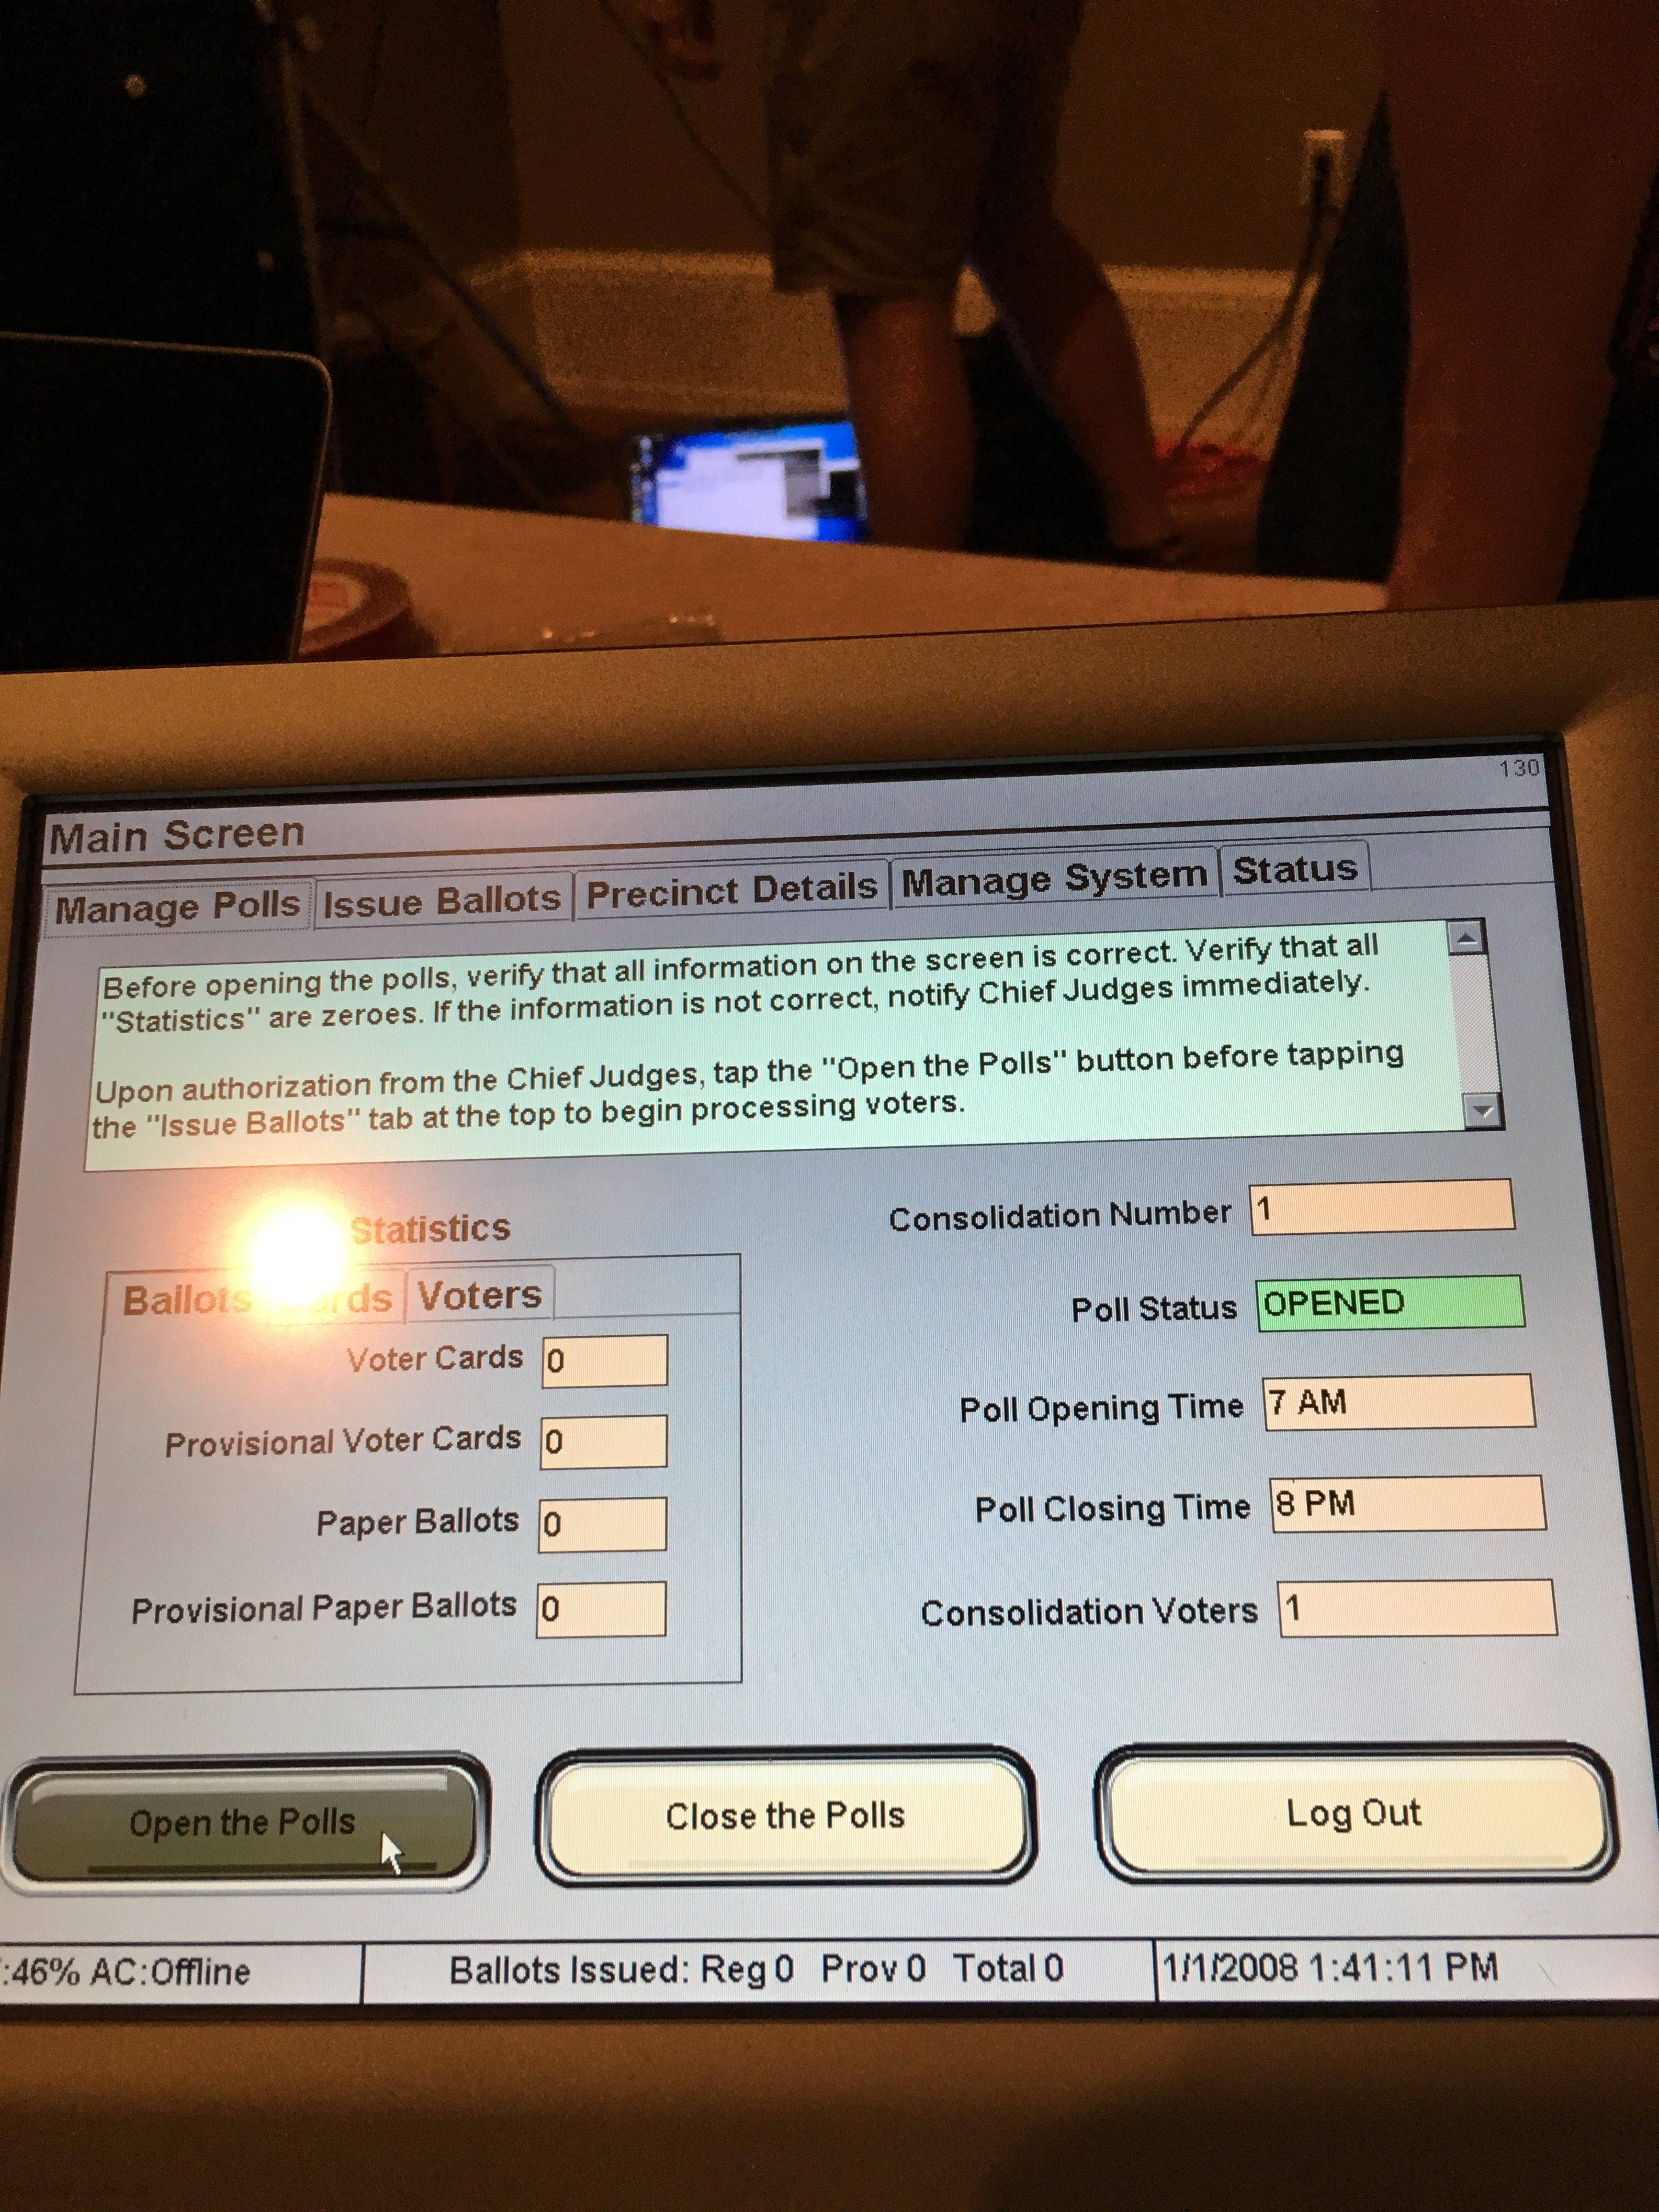 SQLlite is not a secure way to store voter data at DefCon 25